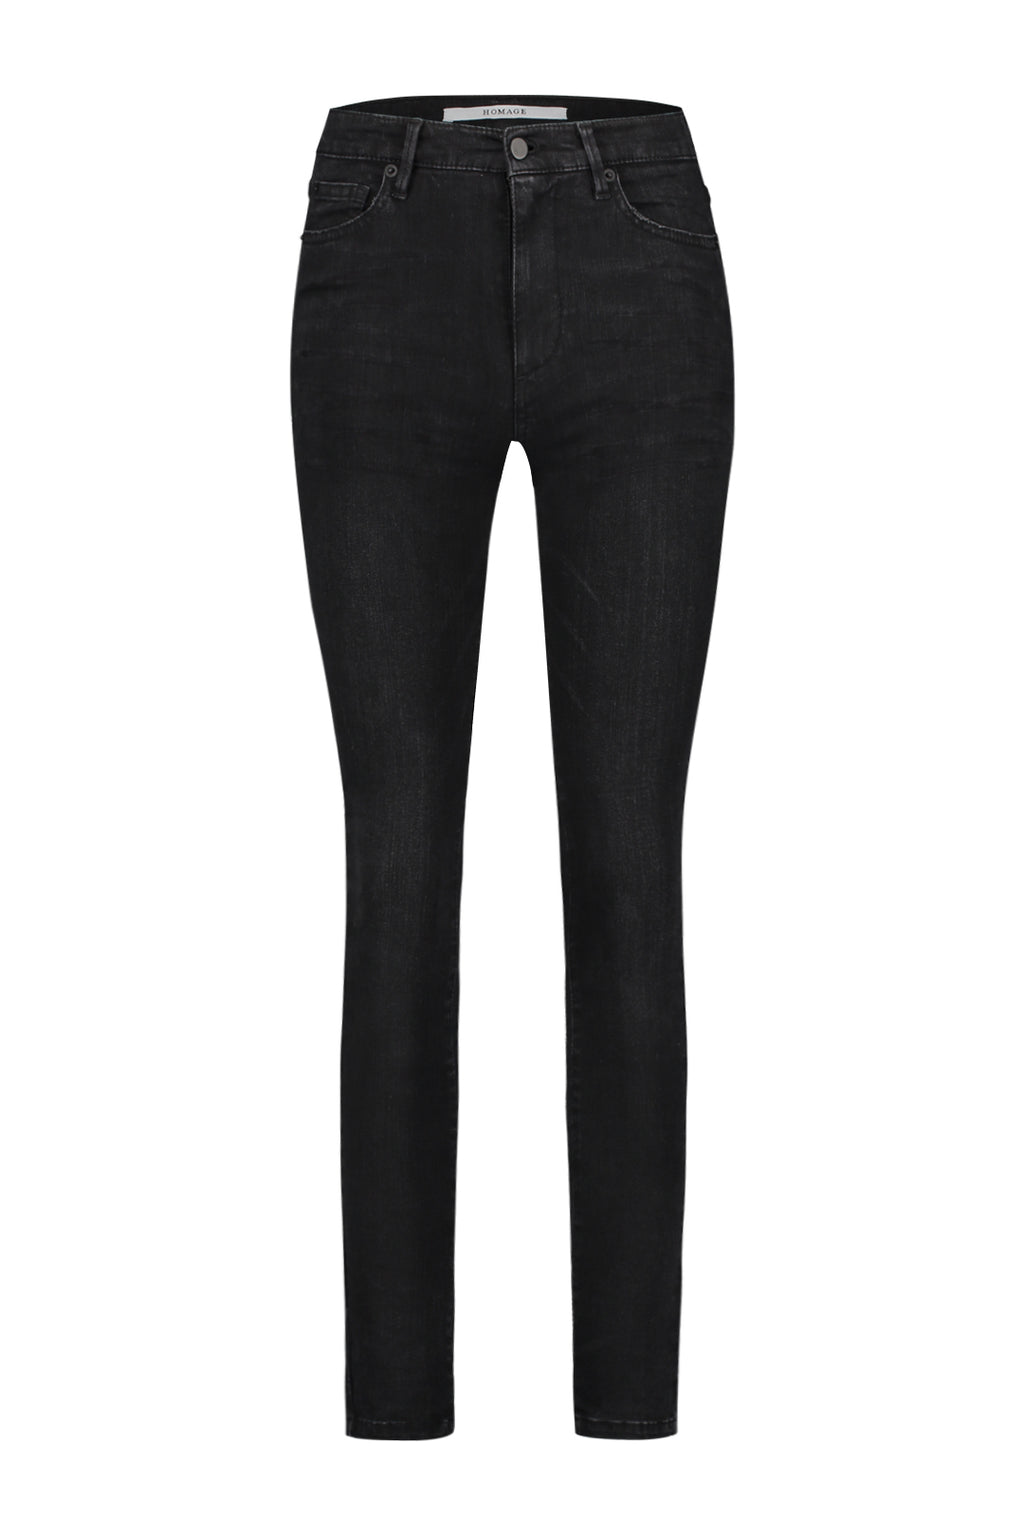 Skinny Jeans Black Used